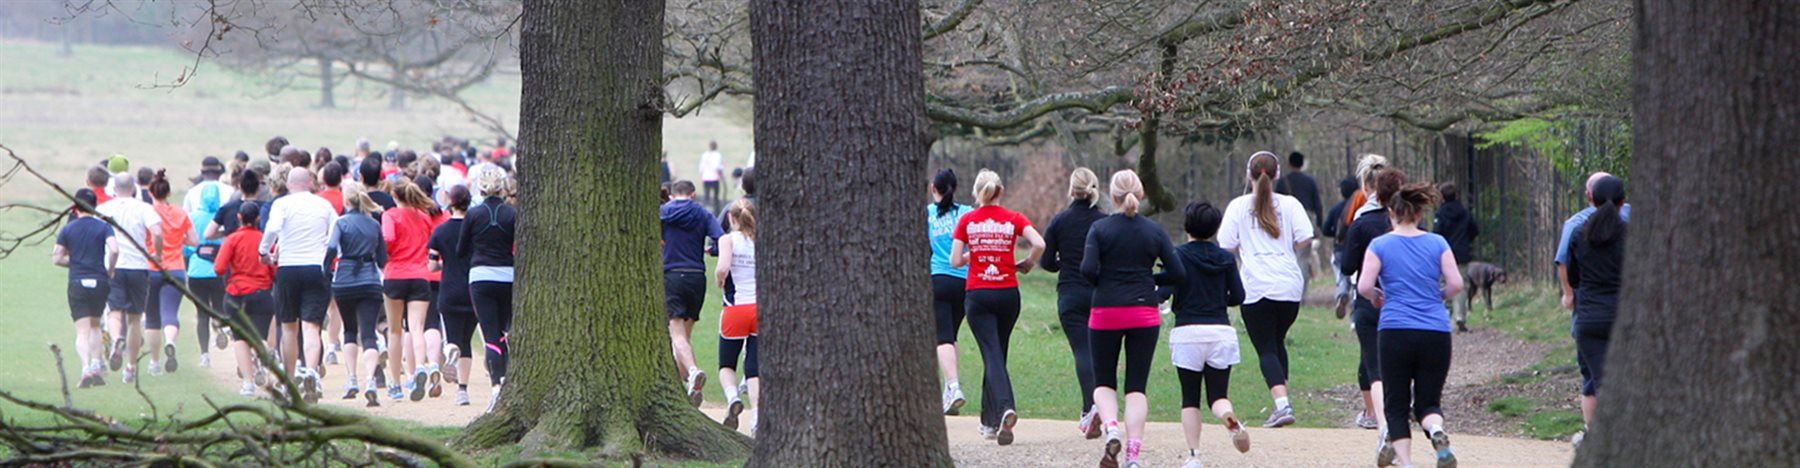 Run Richmond Park 5k & 10k Jun-1 2019